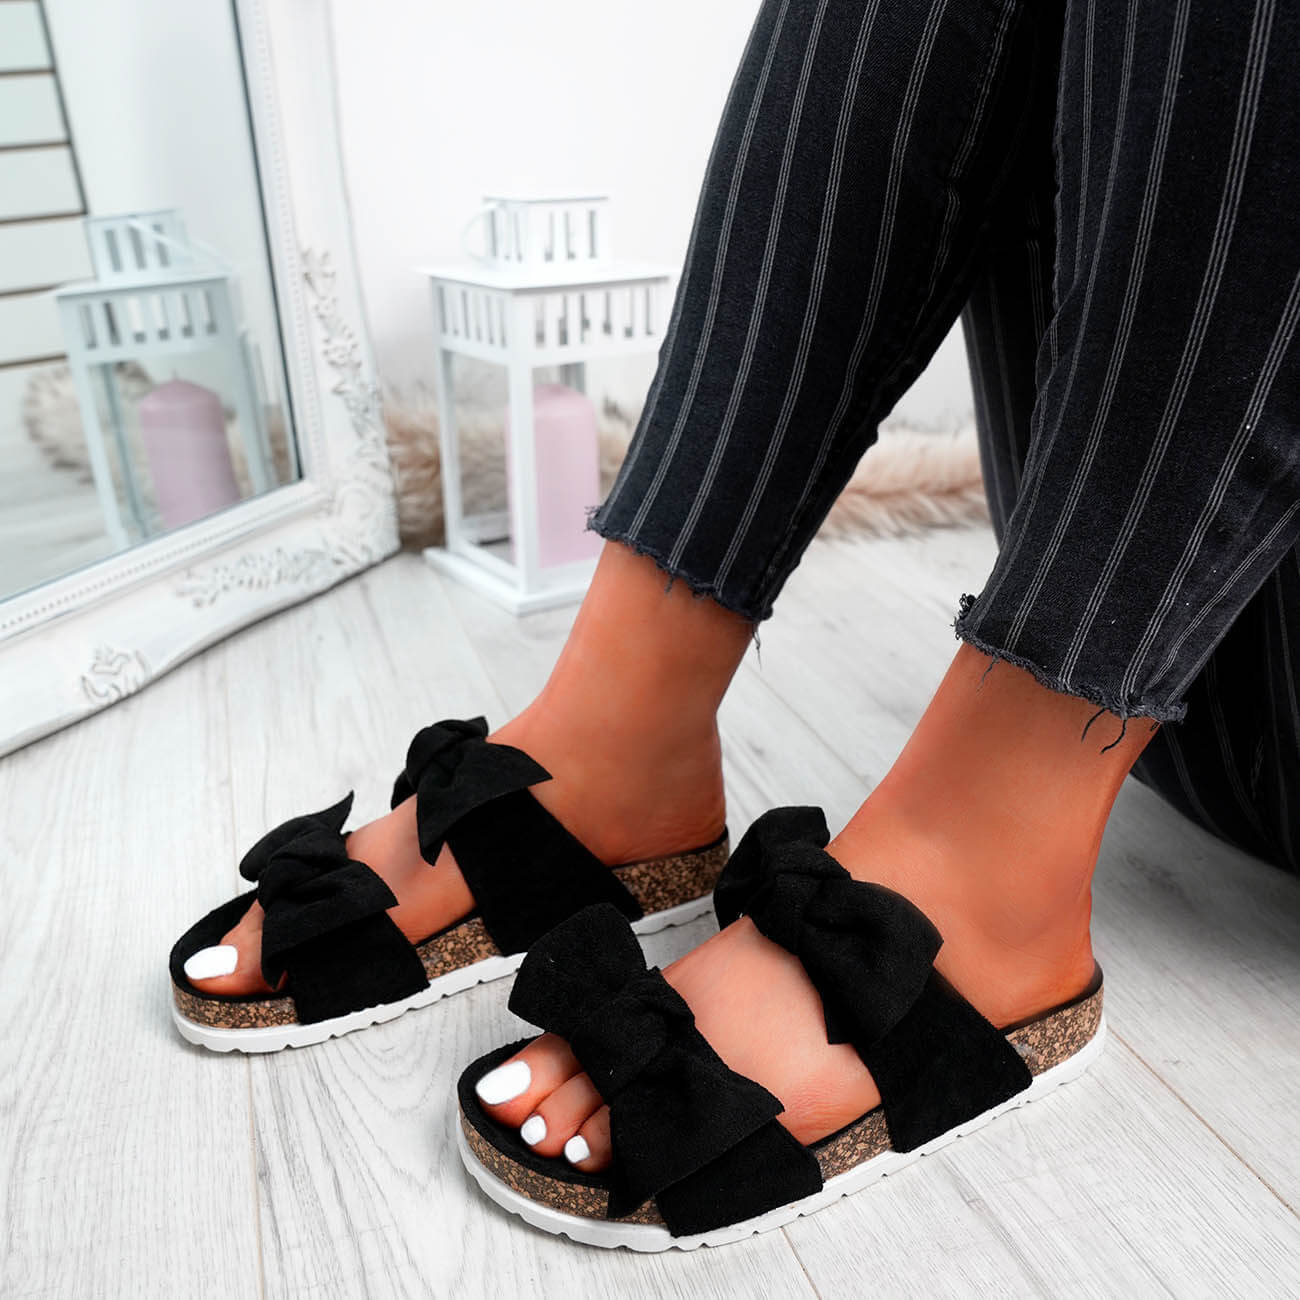 WOMENS-LADIES-PEEP-TOE-SLIP-ON-DOUBLE-BOW-FLAT-SANDALS-PARTY-CLUB-SUMMER-SHOES thumbnail 14